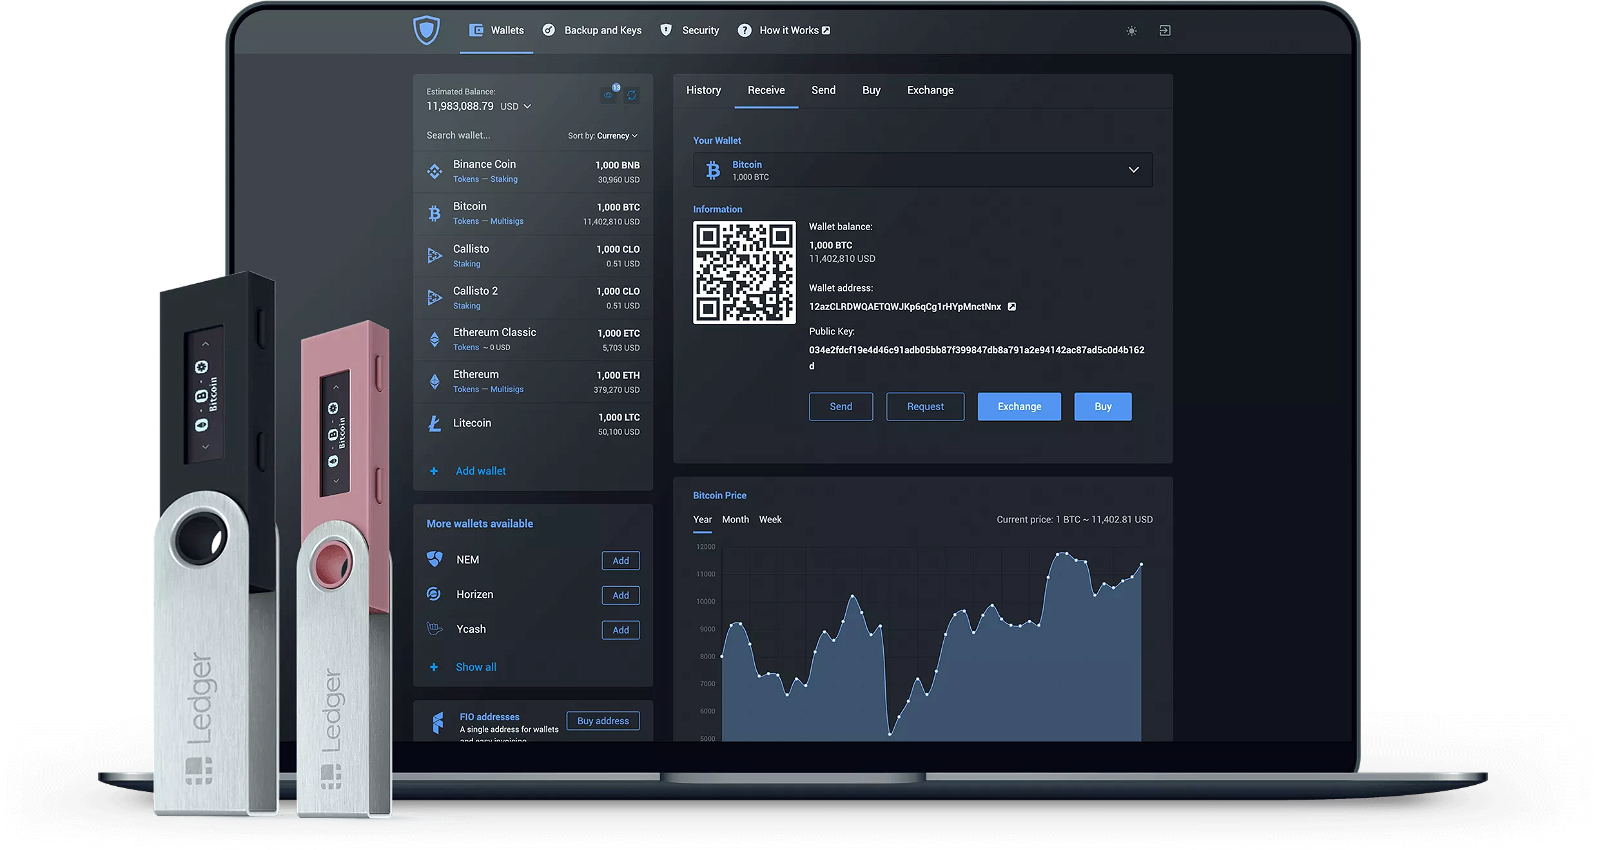 1625159354_644_The-Most-Feature-Packed-Cryptocurrency-Wallet